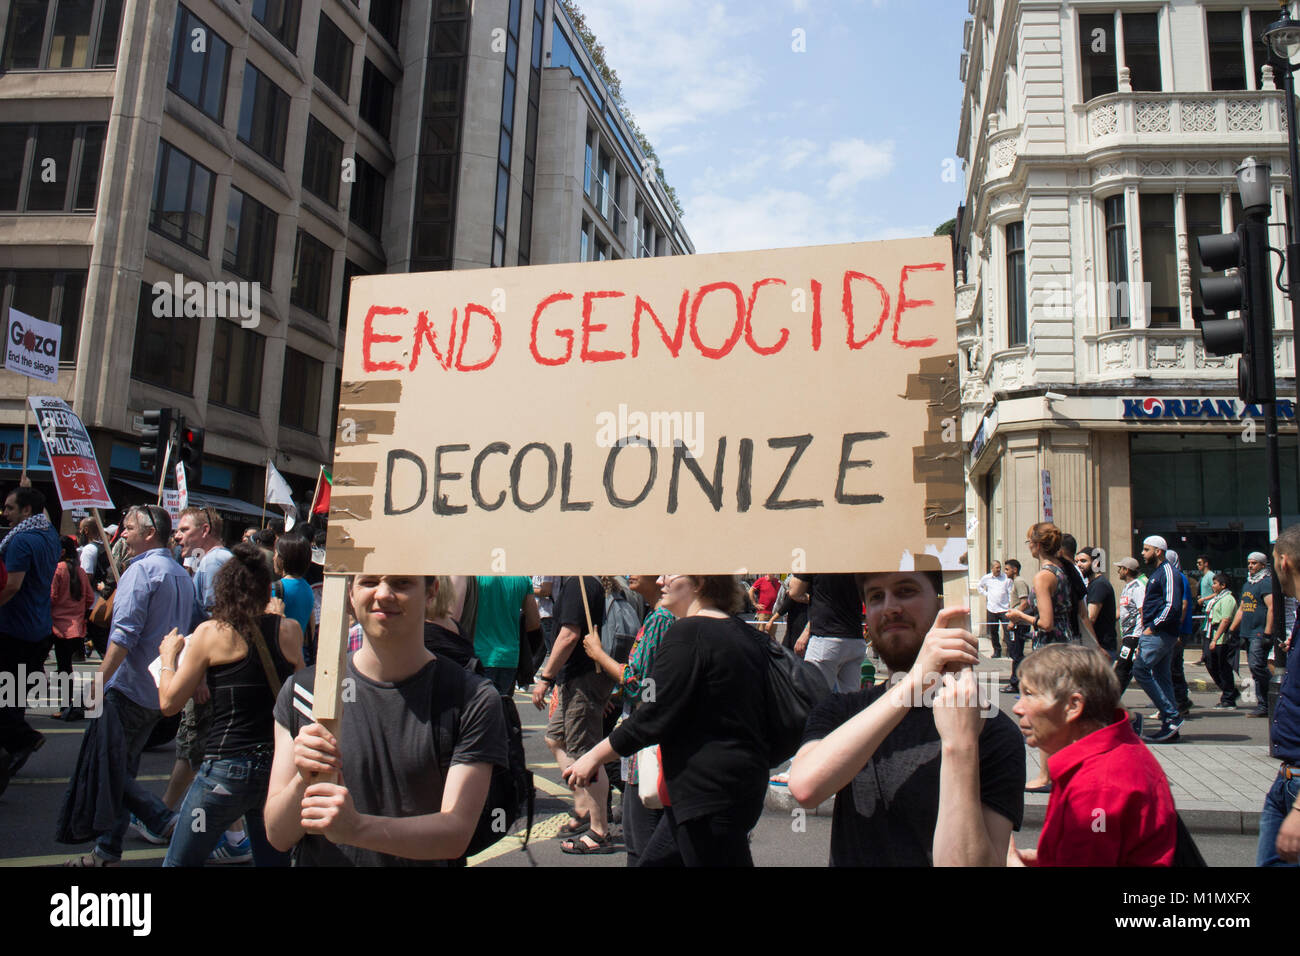 End Genocide - Free Gaza Demo - Stock Image